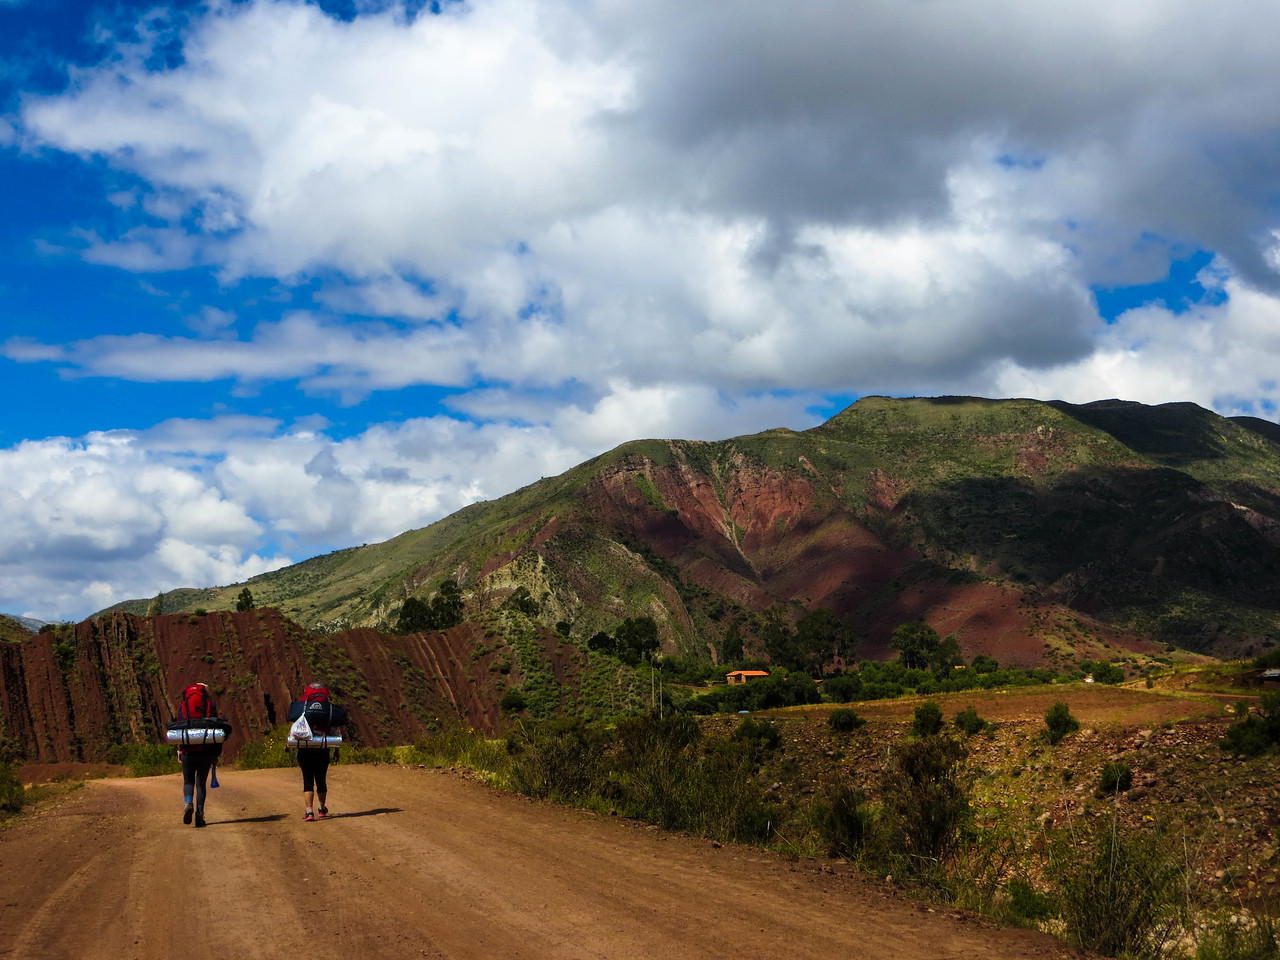 Hiking in the Mountains near Sucre, Bolivia